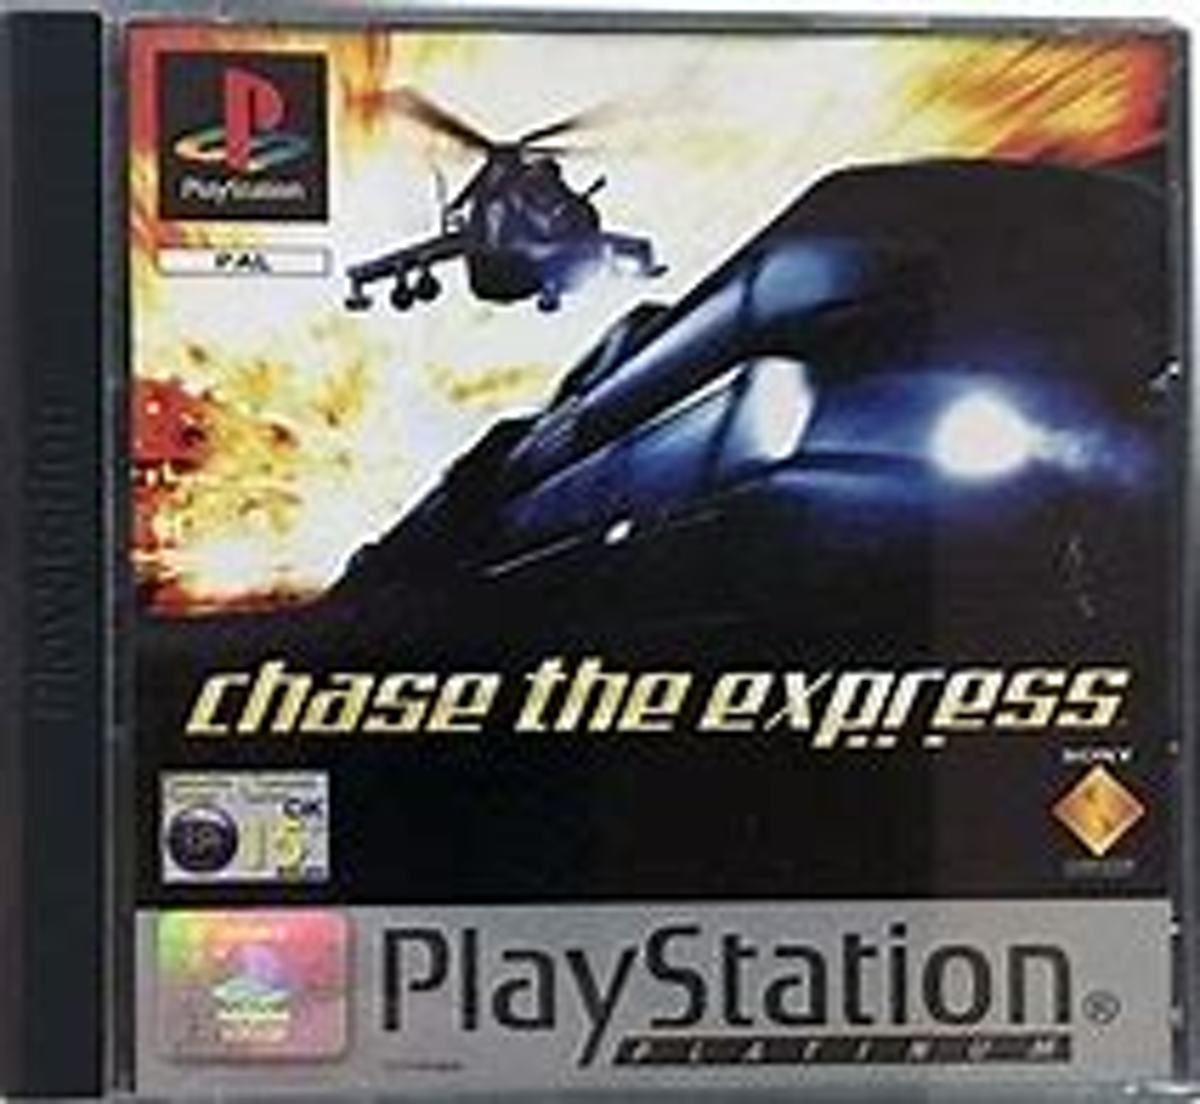 Chase the Express-Ps1